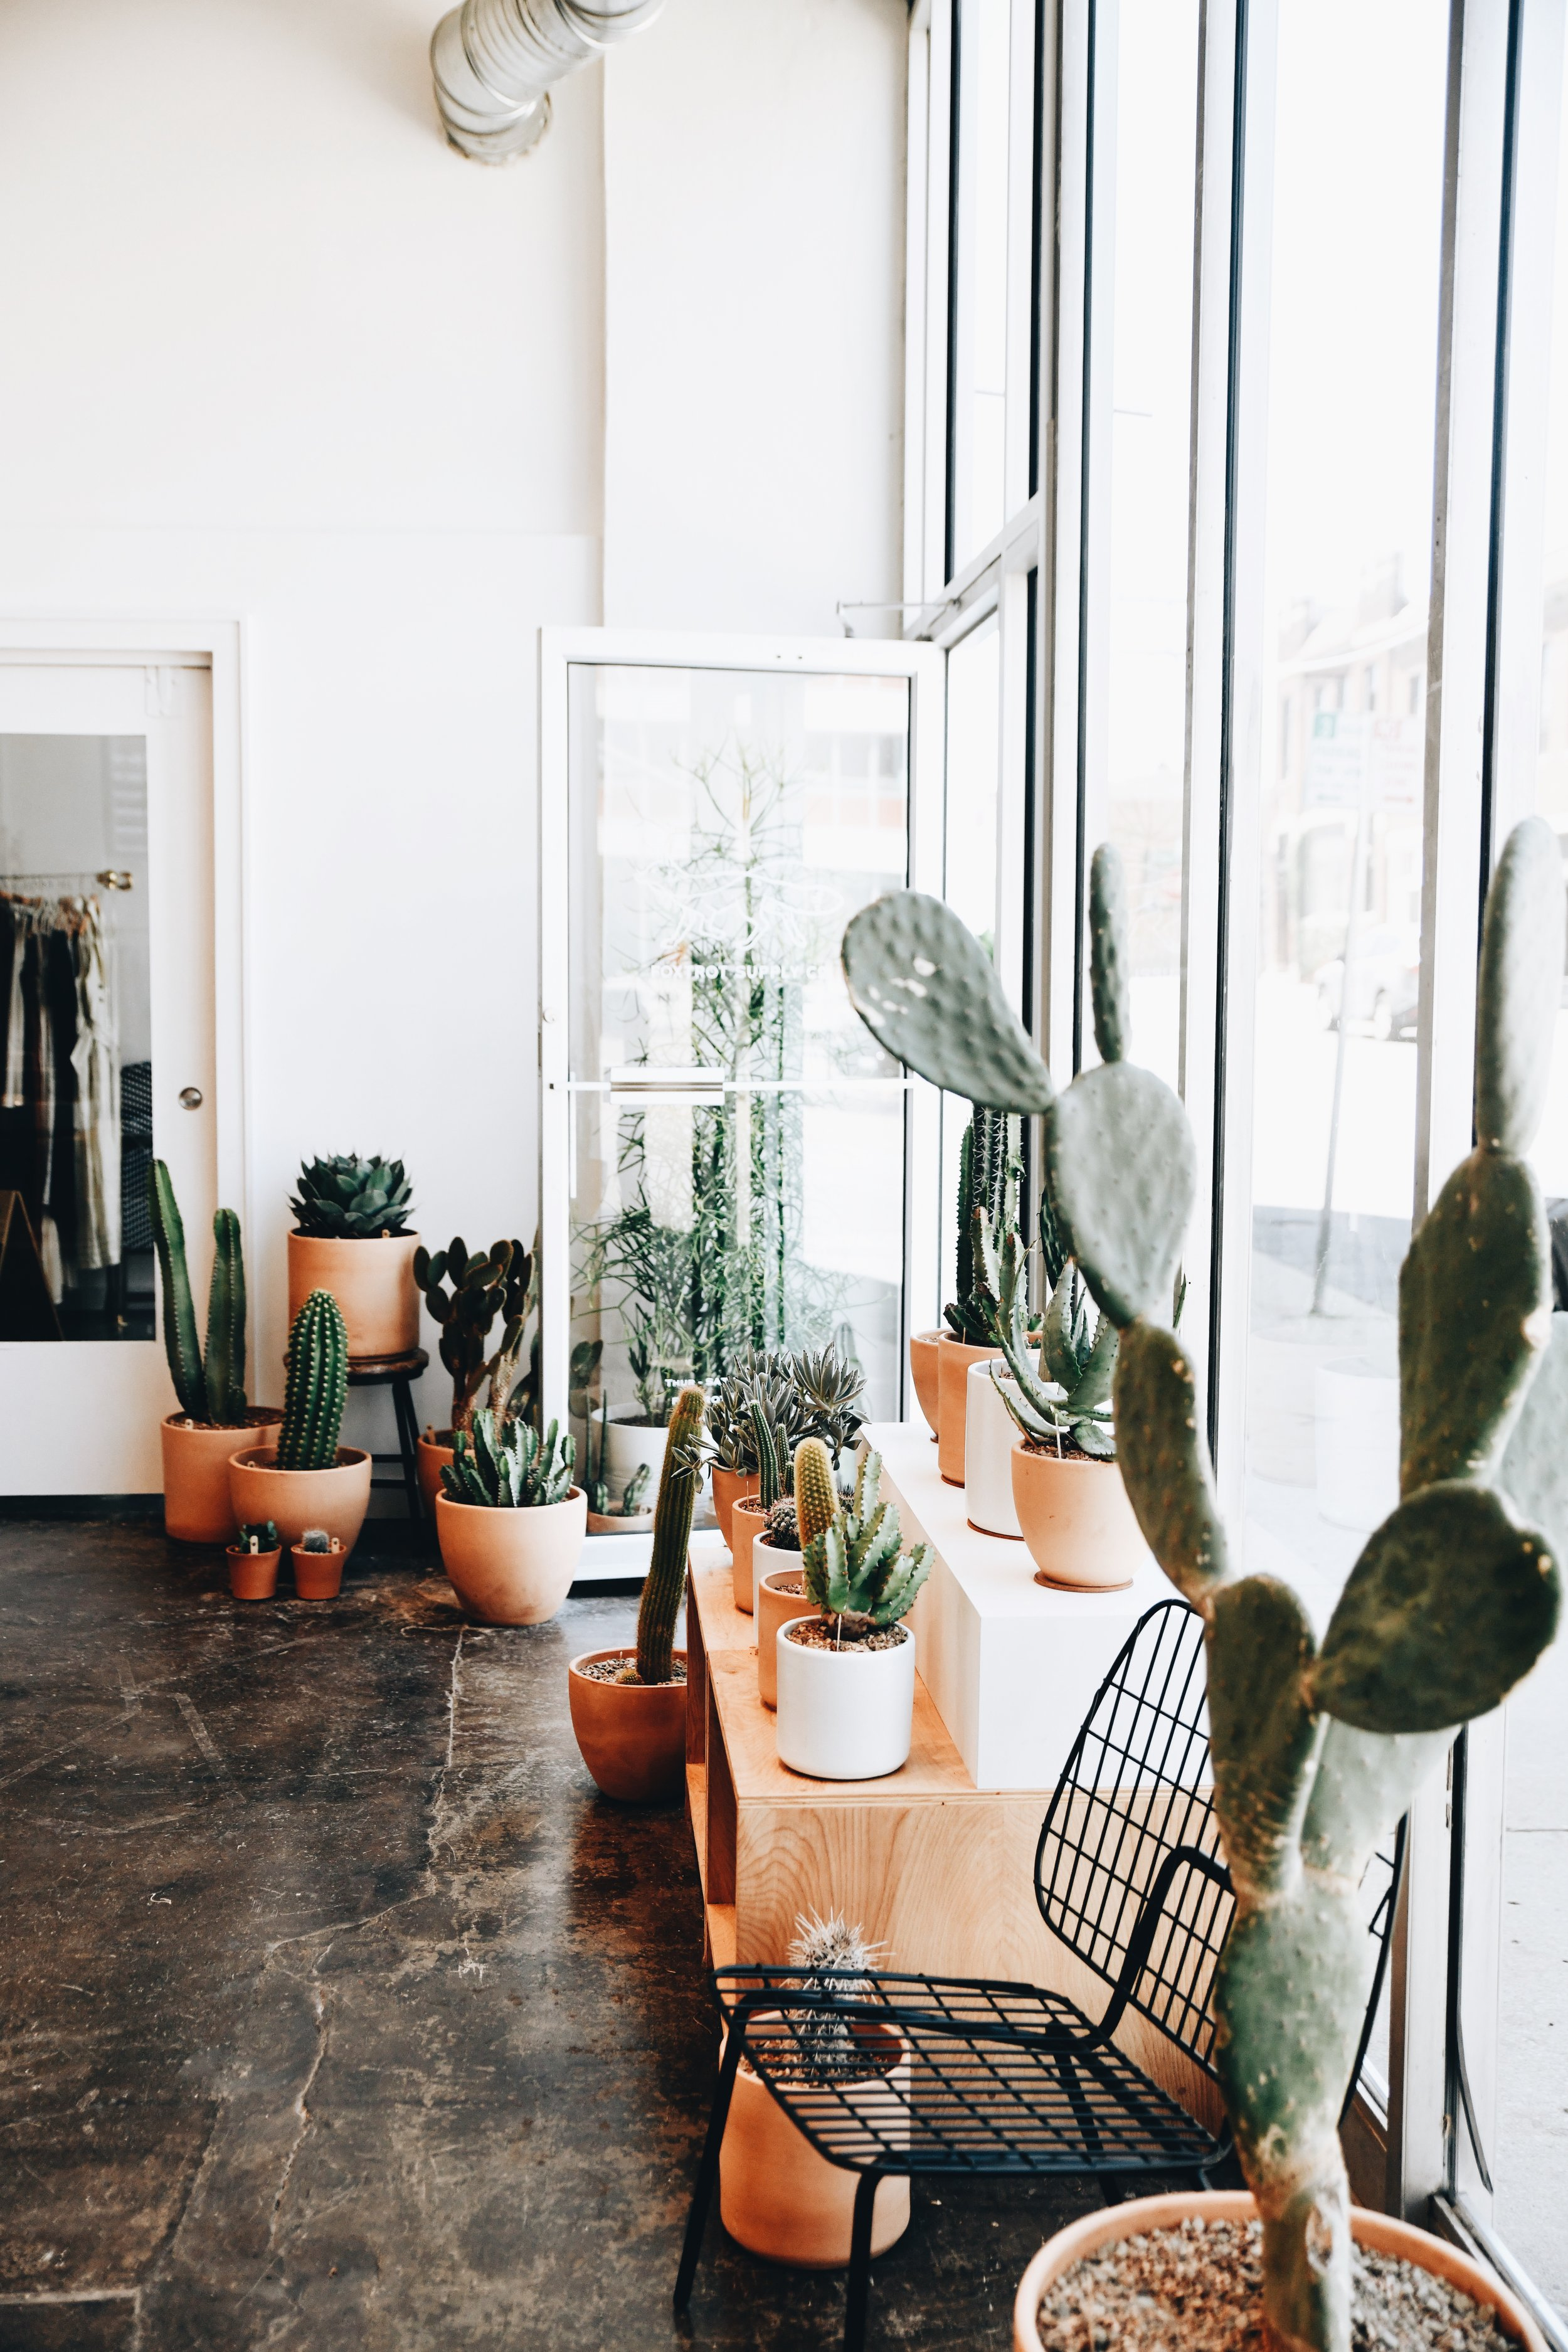 High & Dry Cactus selection inside of Foxtrot Supply Co. Photo by Anna Petrow